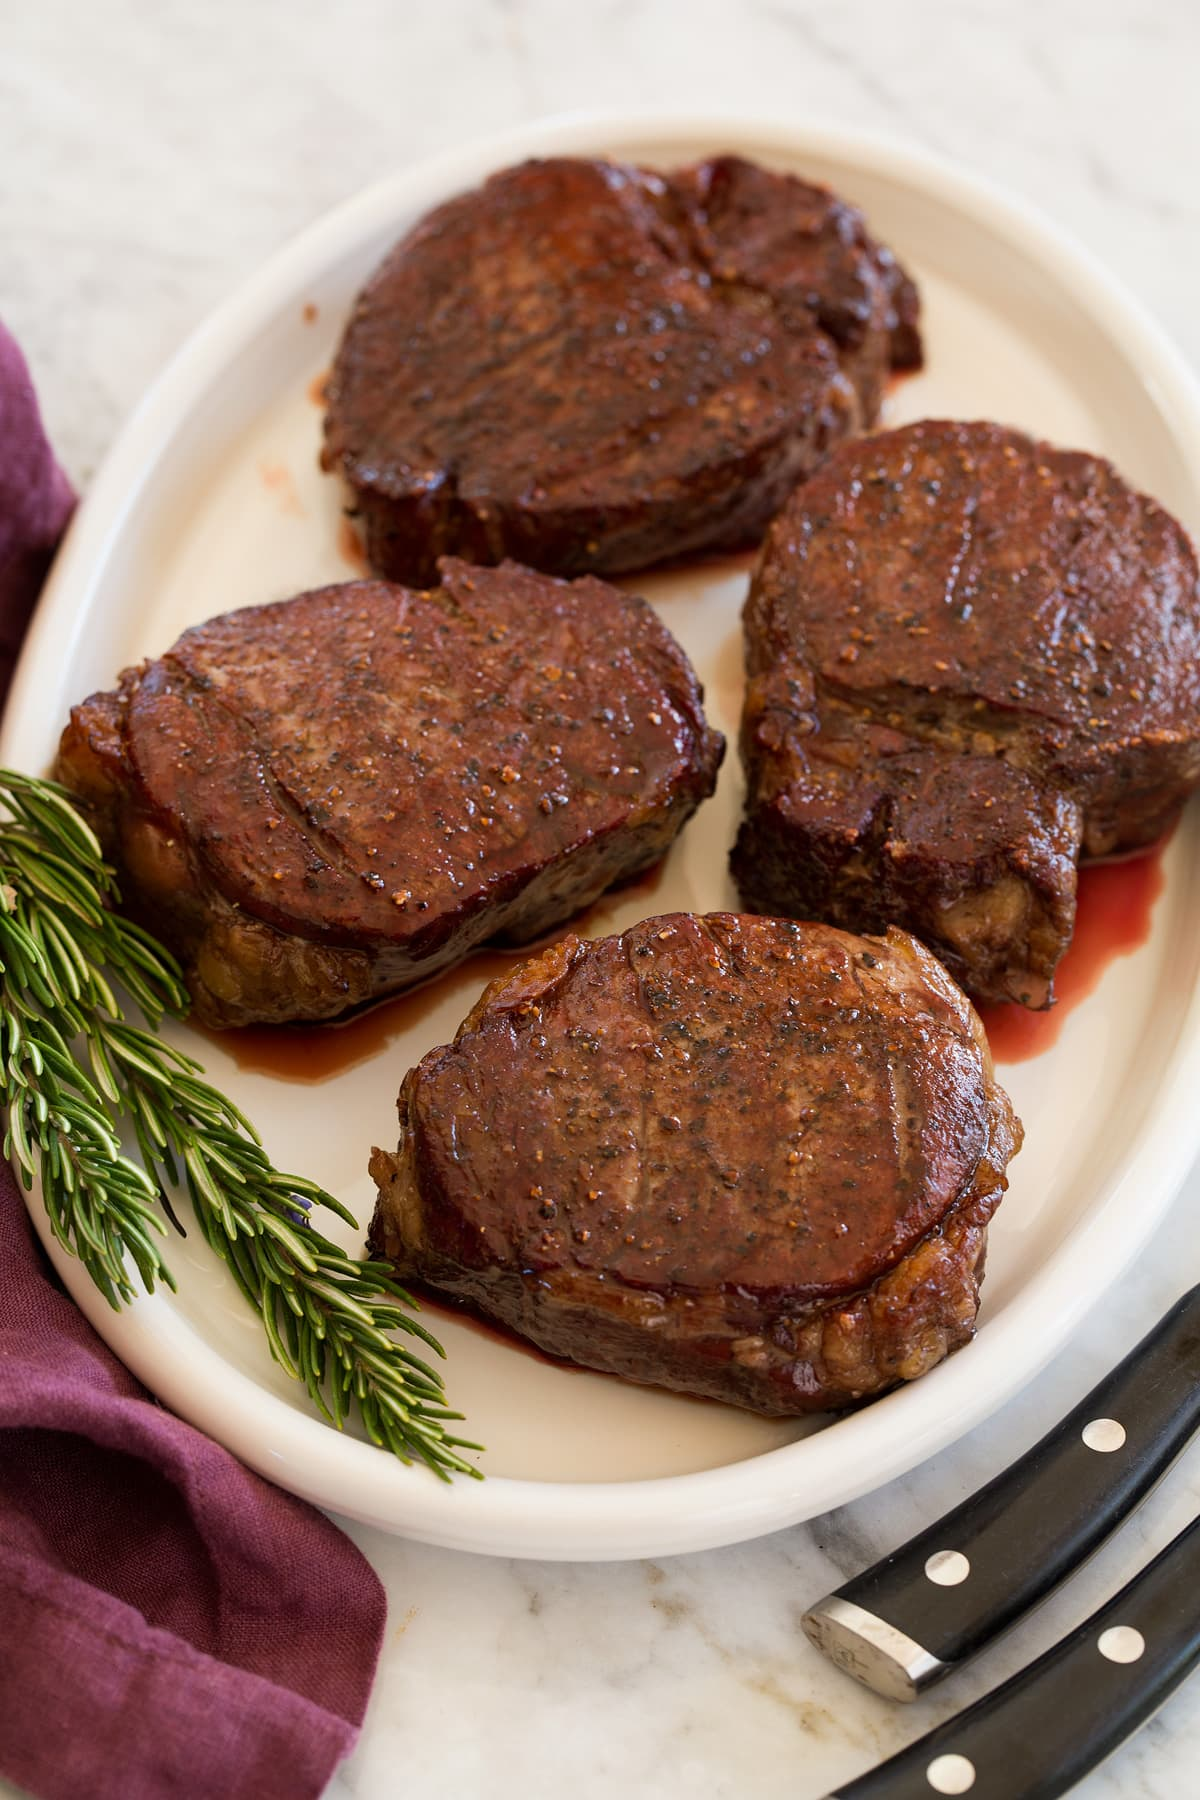 Four cooked fillet mignon steaks on a serving platter.